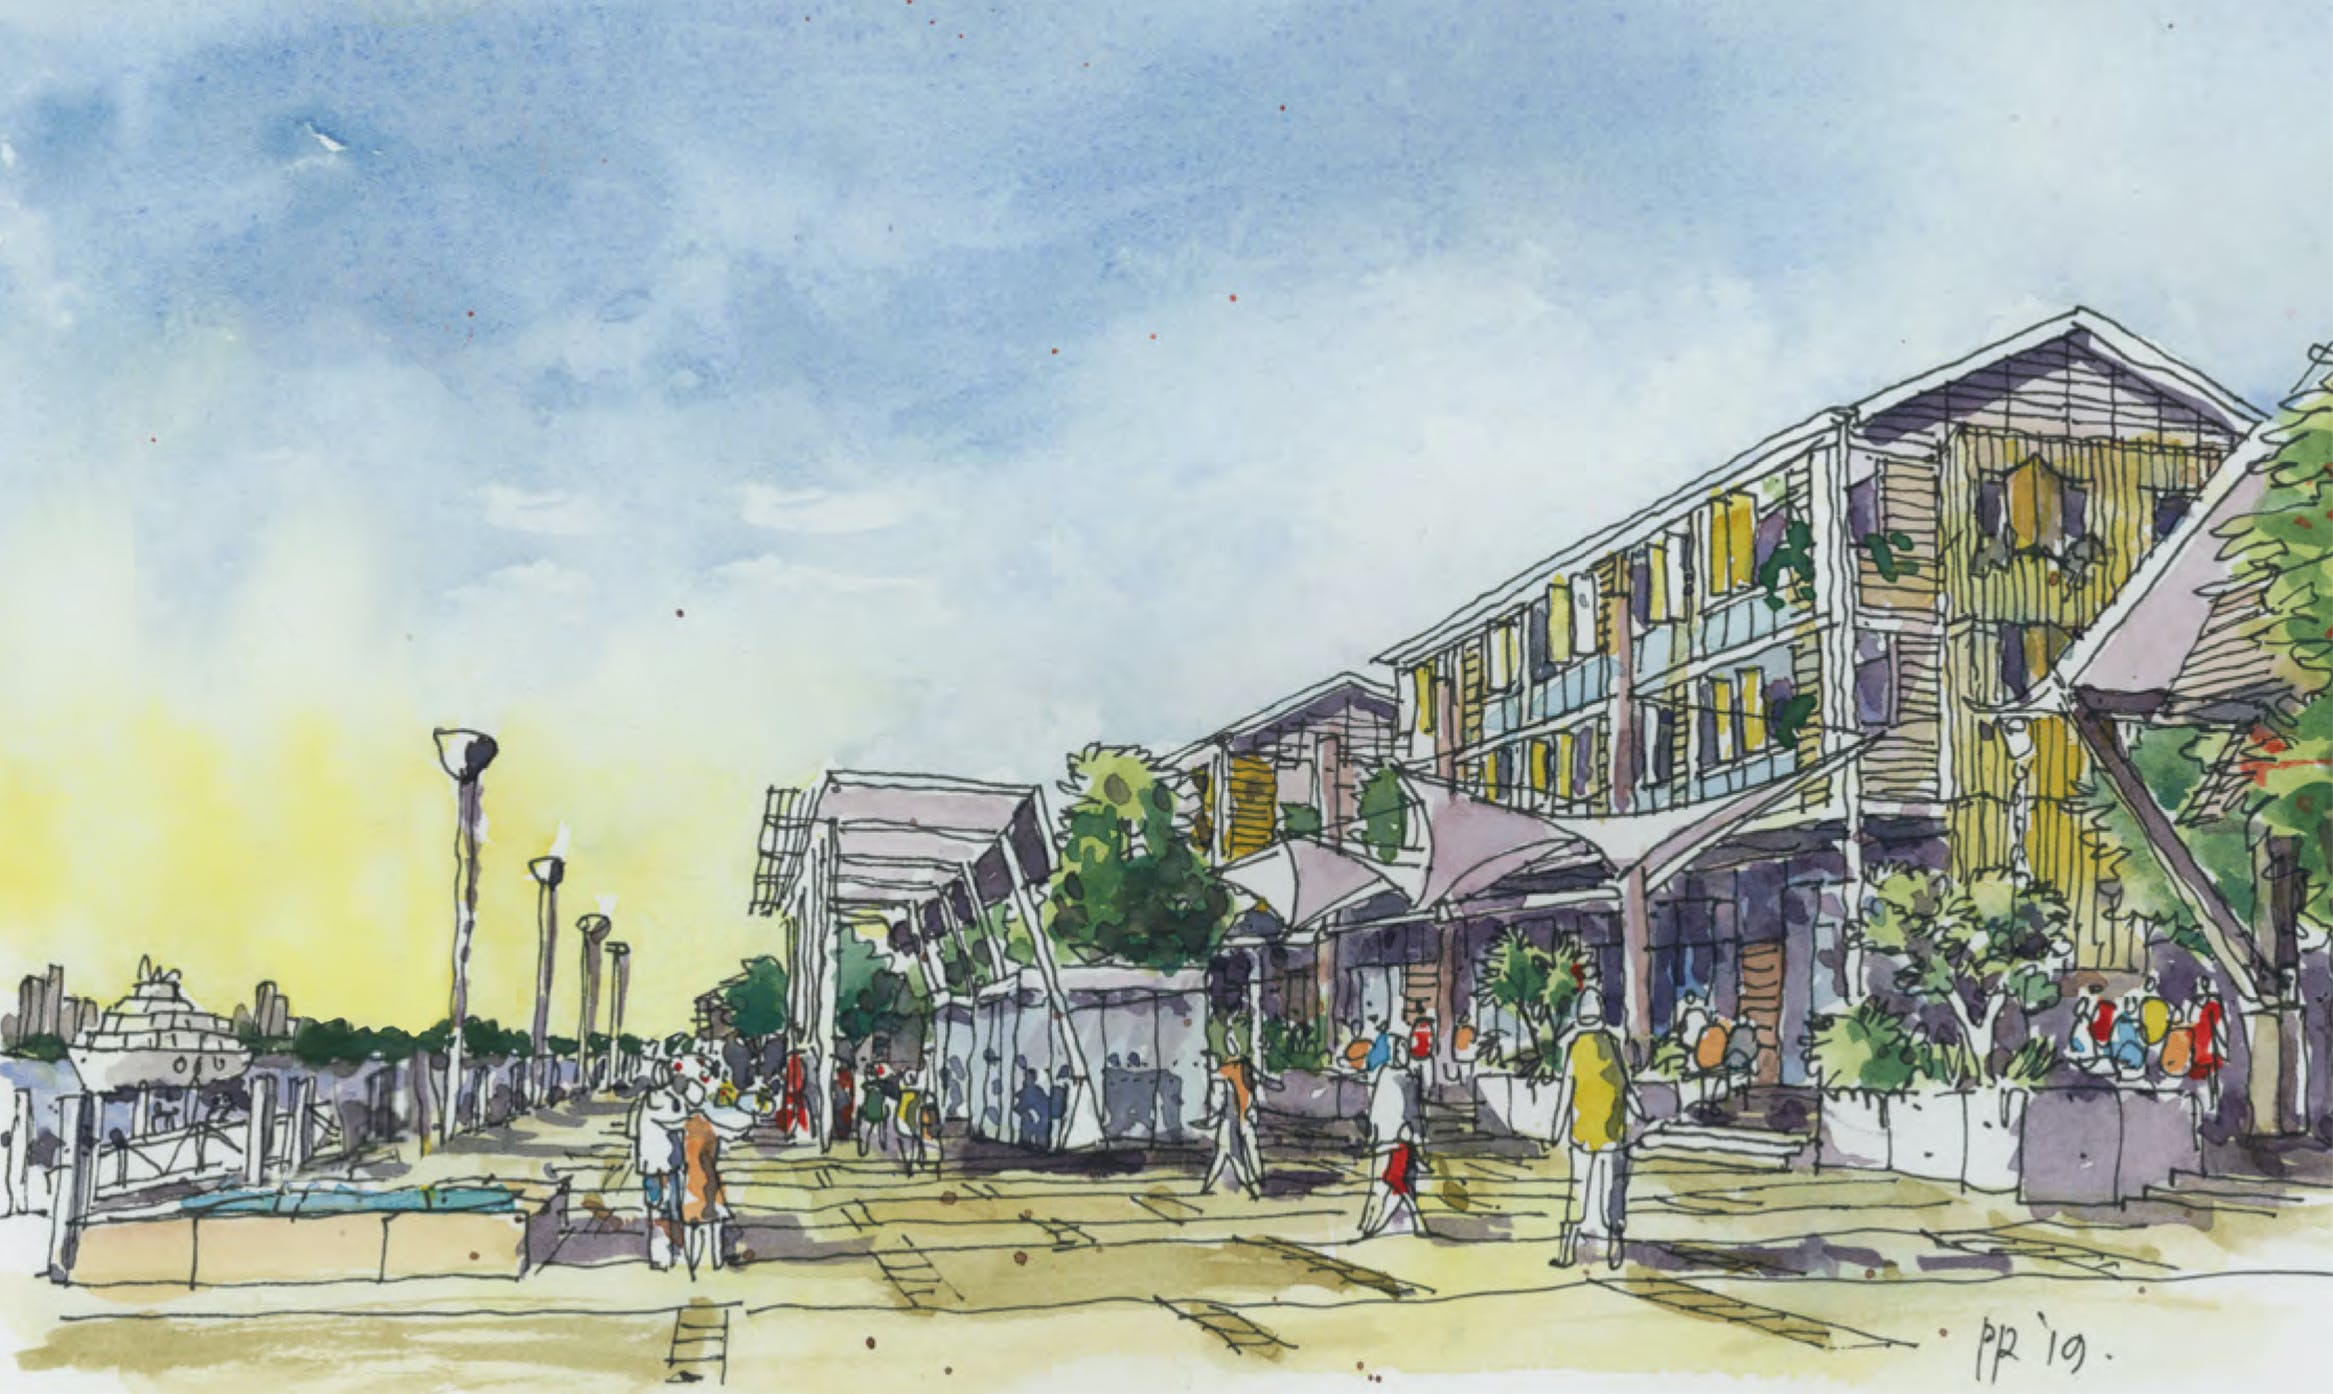 Artist impression of new boardwalk and resort to the south of Sea World.